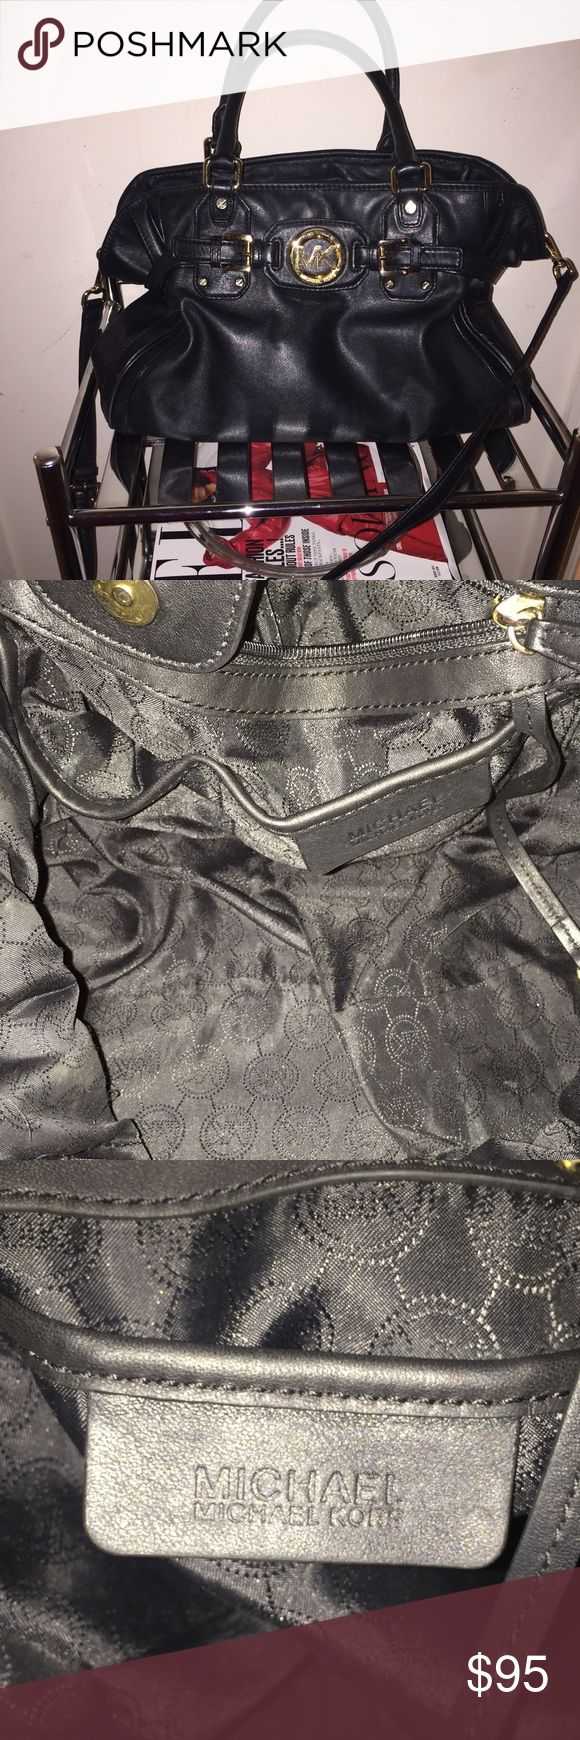 Michael Kors Black Hudson Tote An authentic Michael Kors Black Hudson Tote. Used. Clean inside. About MD/LG sized. Comes with a cross-body strap. The gold color is gently fading on the magnet inside and feet but still looks good. Overall the bag is in great shape. MICHAEL Michael Kors Bags Totes